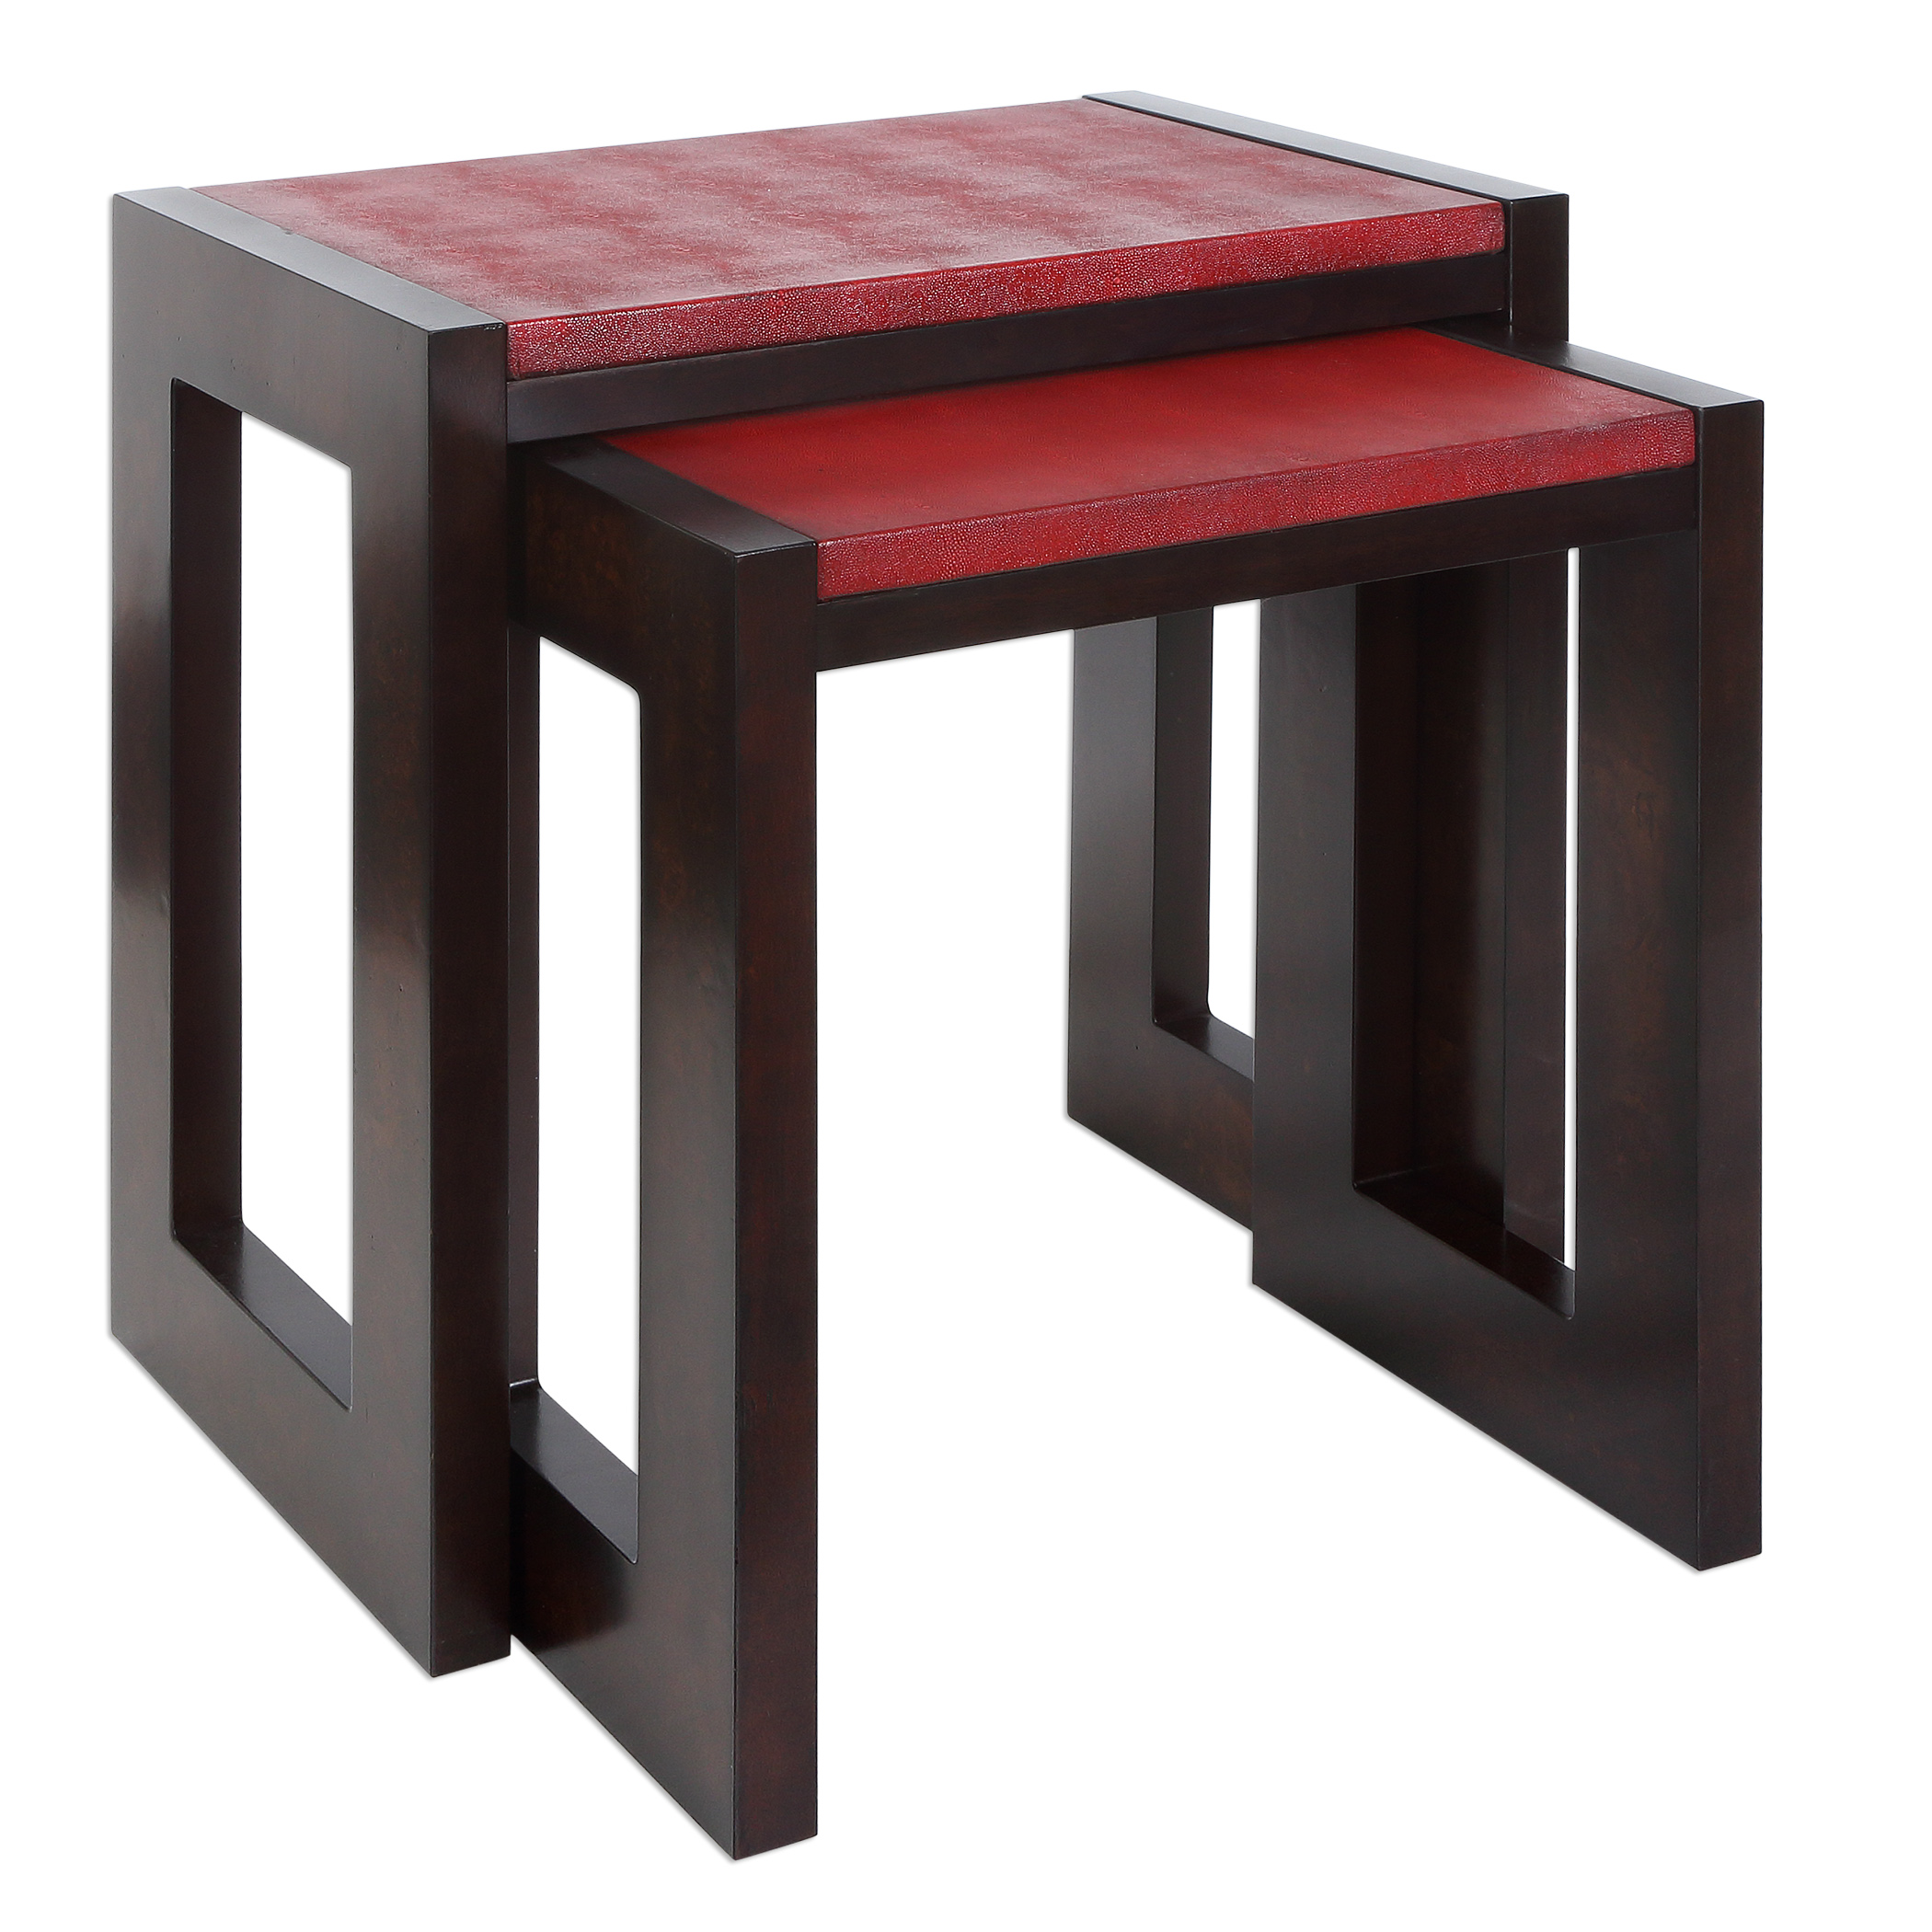 Uttermost Accent Furniture Onni Nesting Tables S/2 - Item Number: 25916